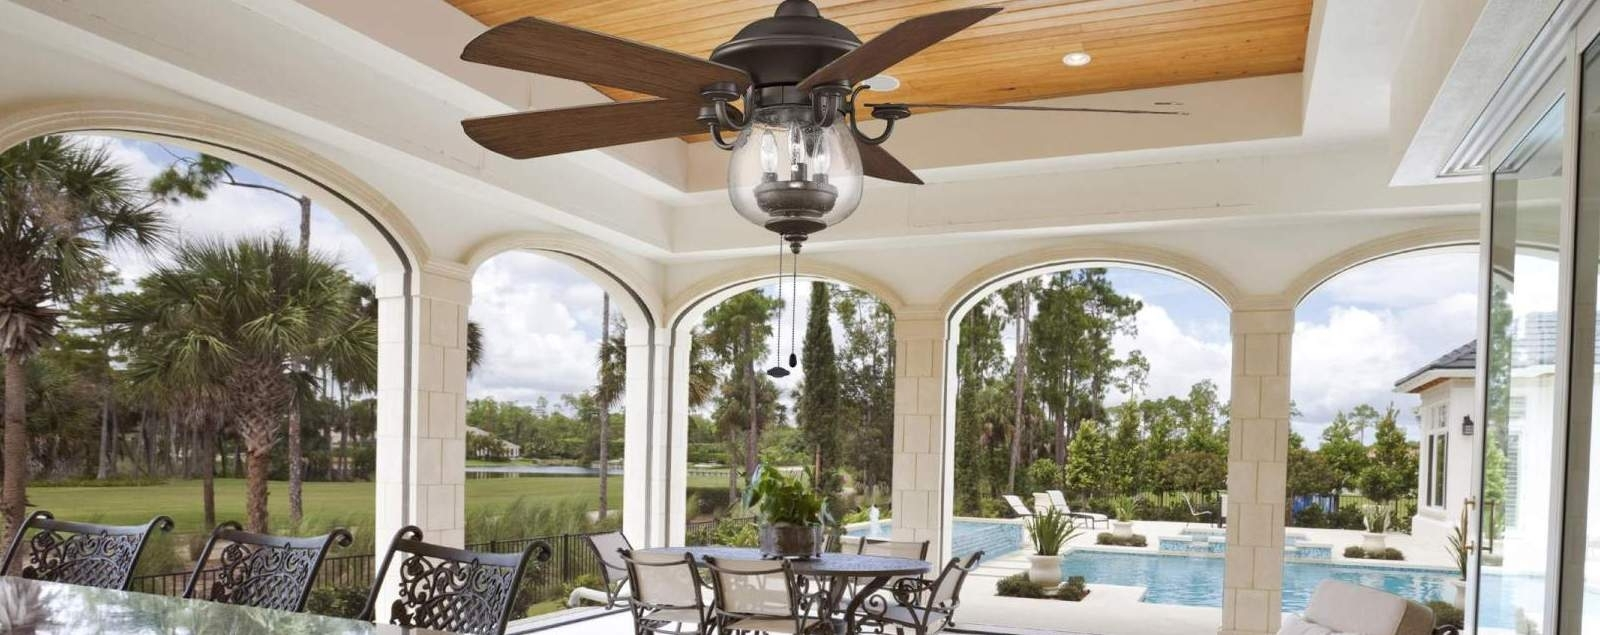 Outdoor Ceiling Fans – Shop Wet, Dry, And Damp Rated Outdoor Fans Throughout 2018 Gold Coast Outdoor Ceiling Fans (View 13 of 20)